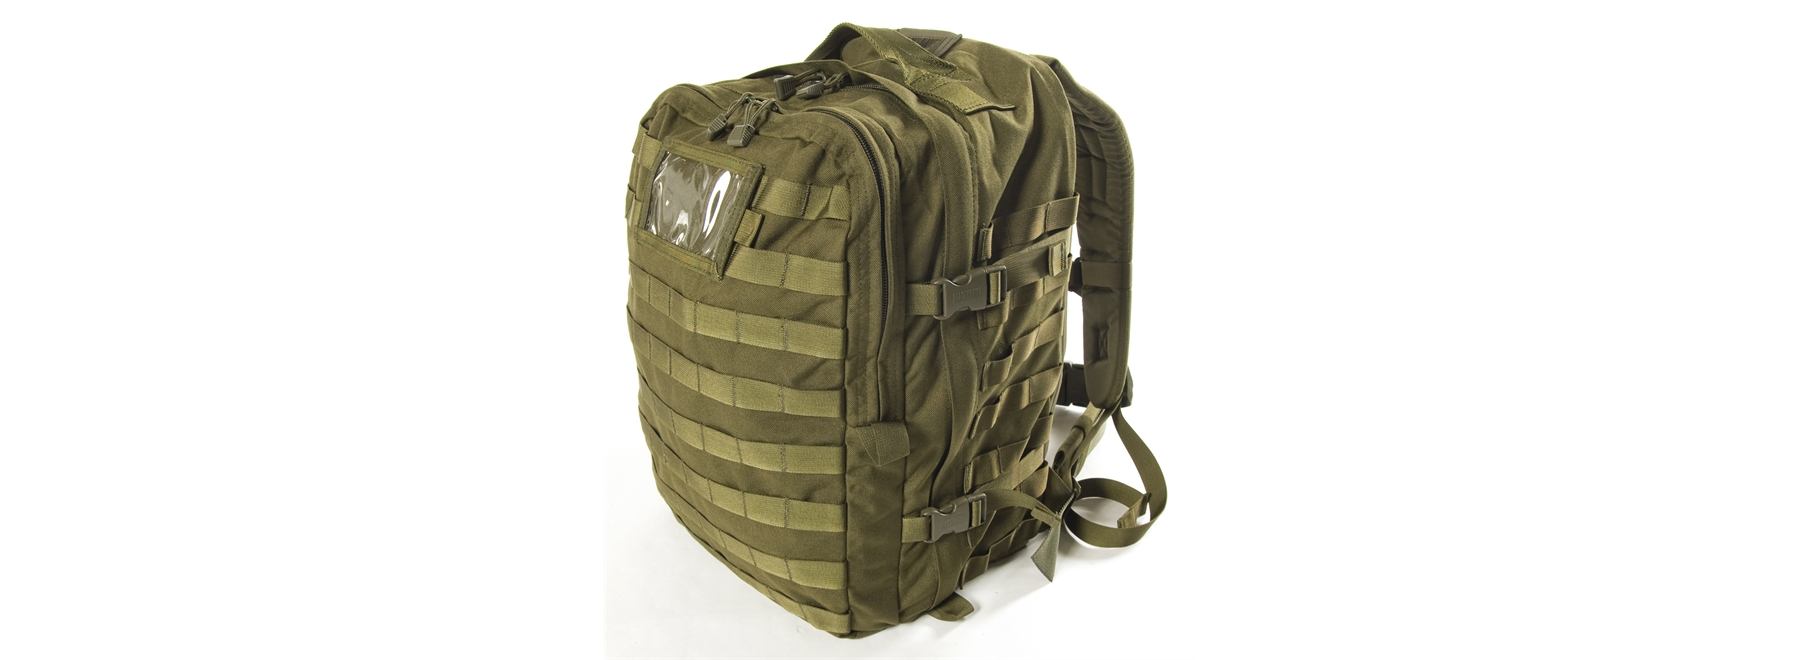 Special Operations Medical Back Pack